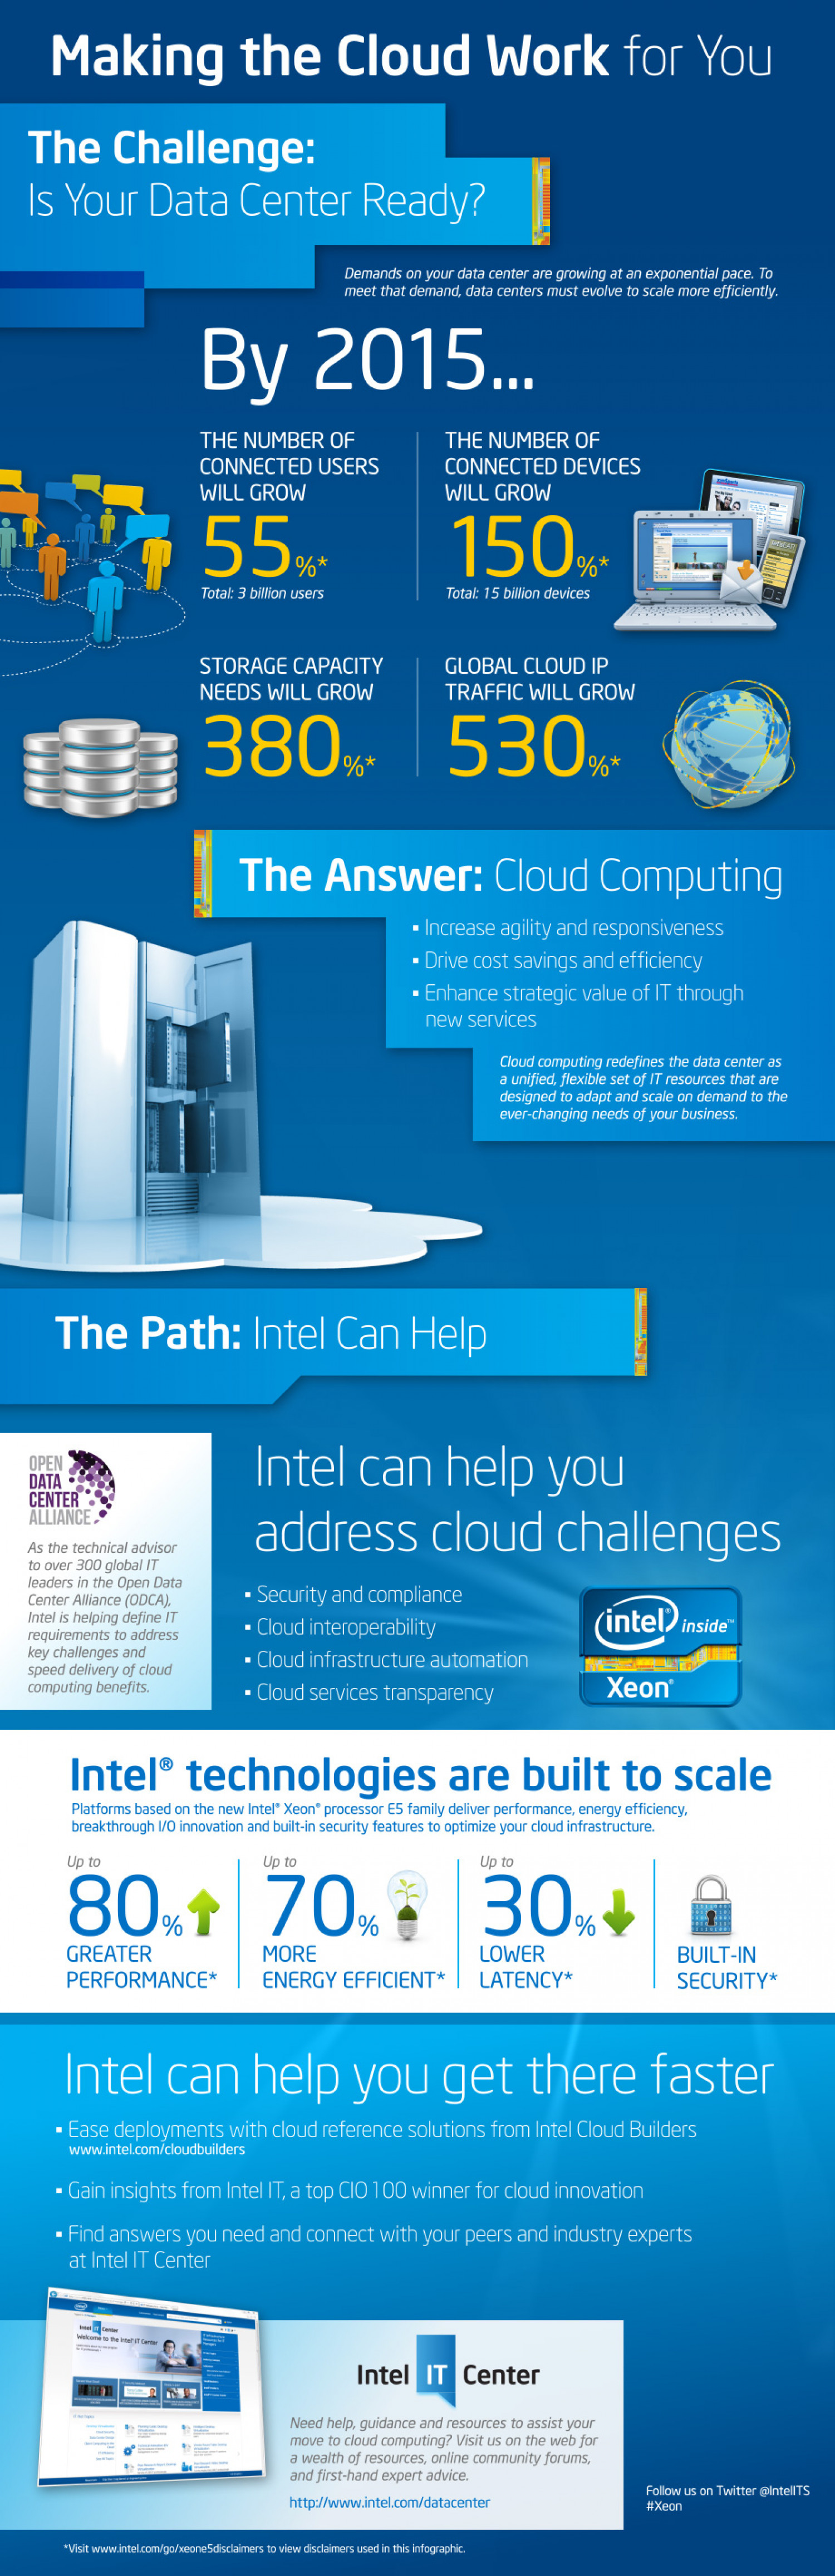 Making the Cloud Work for You Infographic